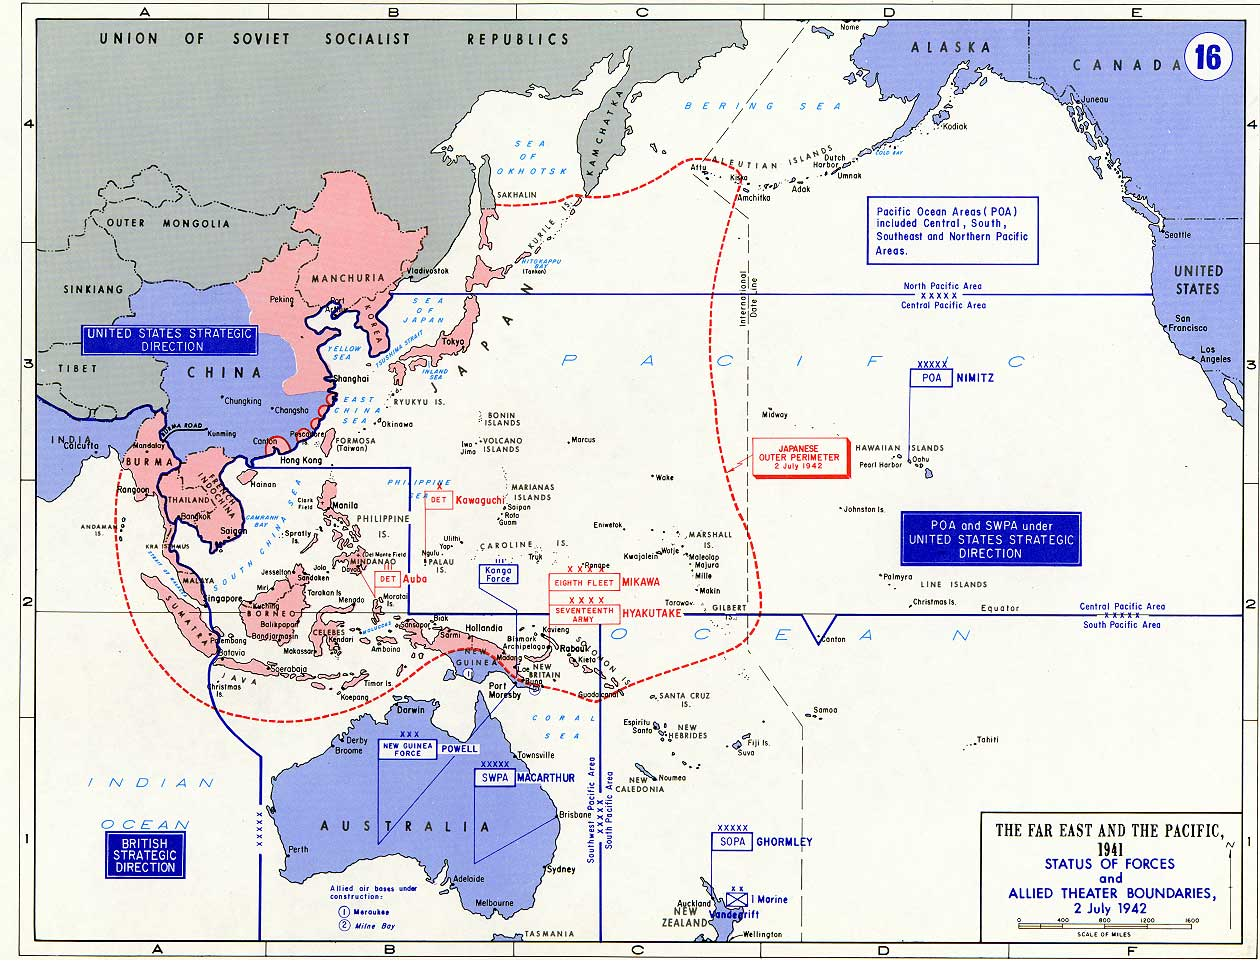 Battle map showing the area of the Far East and Pacific 1941 0D